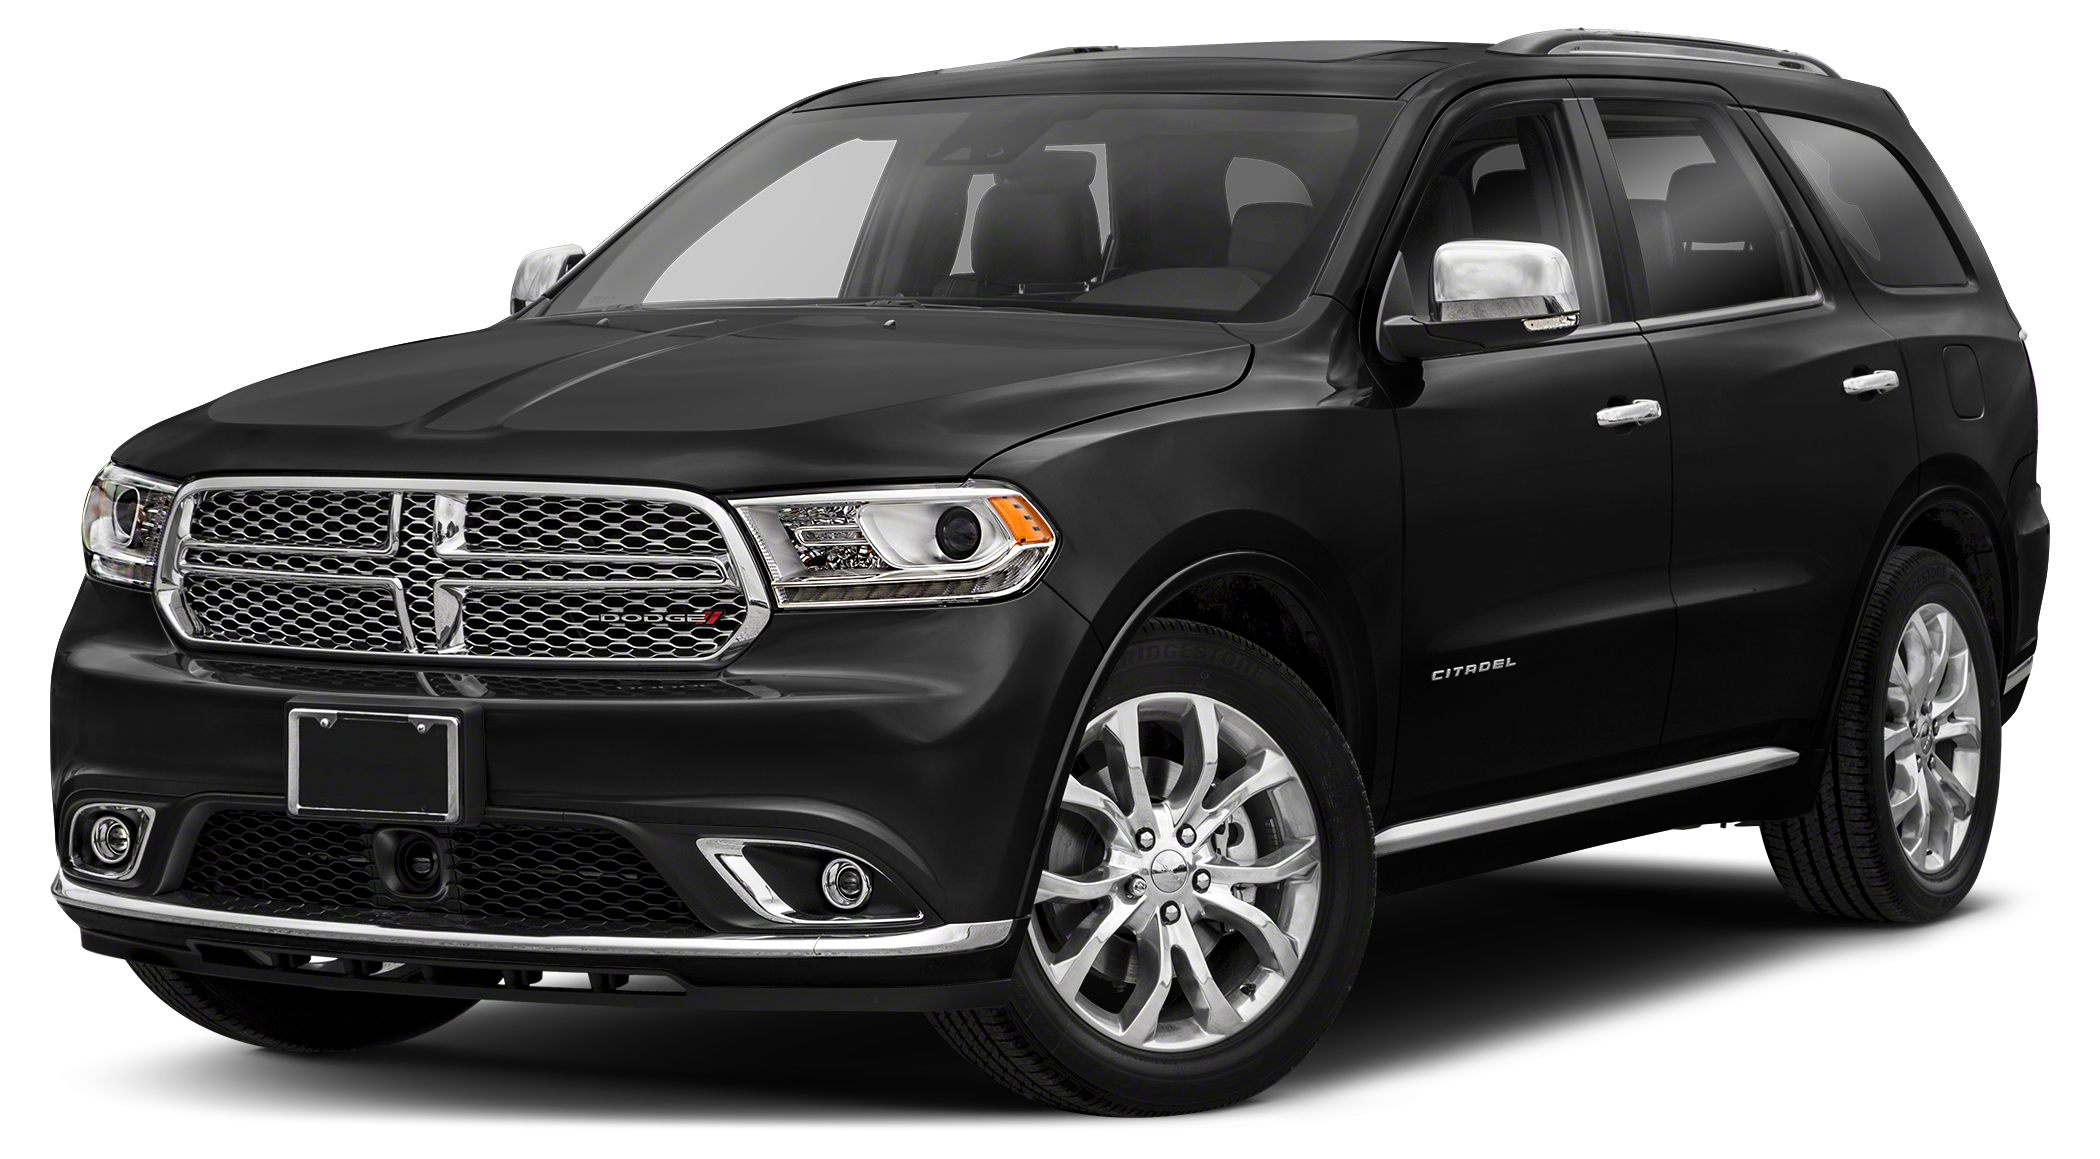 2018 Dodge Durango Citadel Miles 5Color DB Black Crystal Clearcoat Stock 80481 VIN 1C4SDJET6